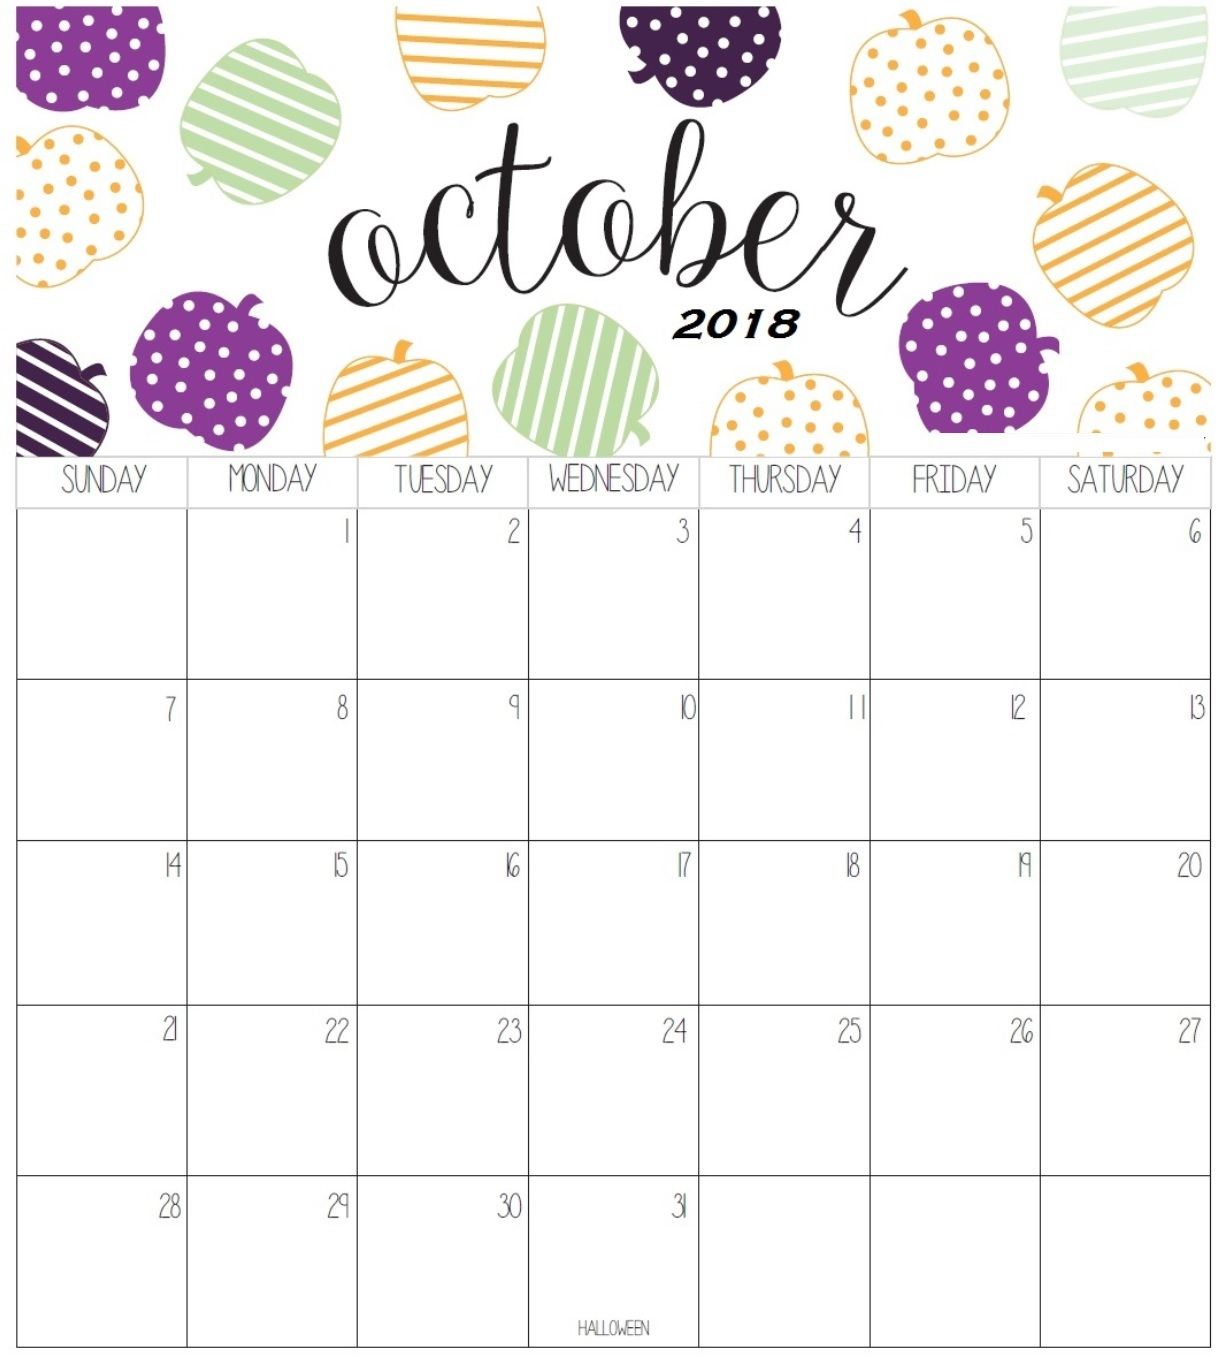 October Printable Calendar - Nadi.palmex.co in Free Cute Printable Calendar Templates